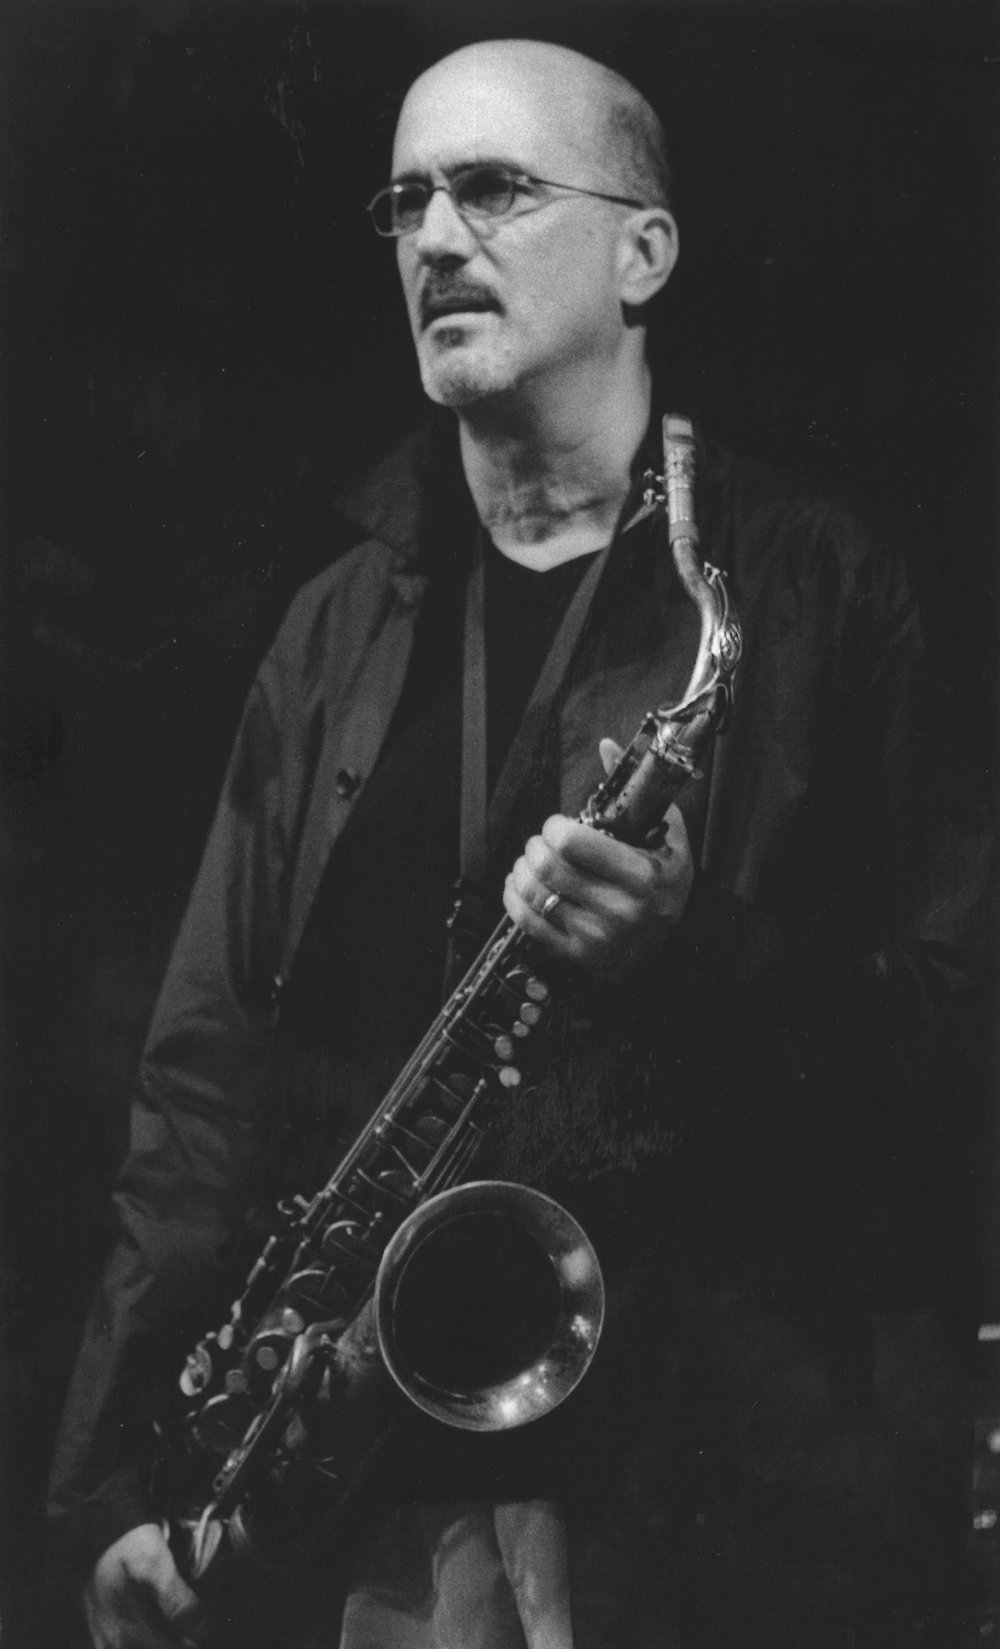 Mike Brecker at Umbria Jazz 2000